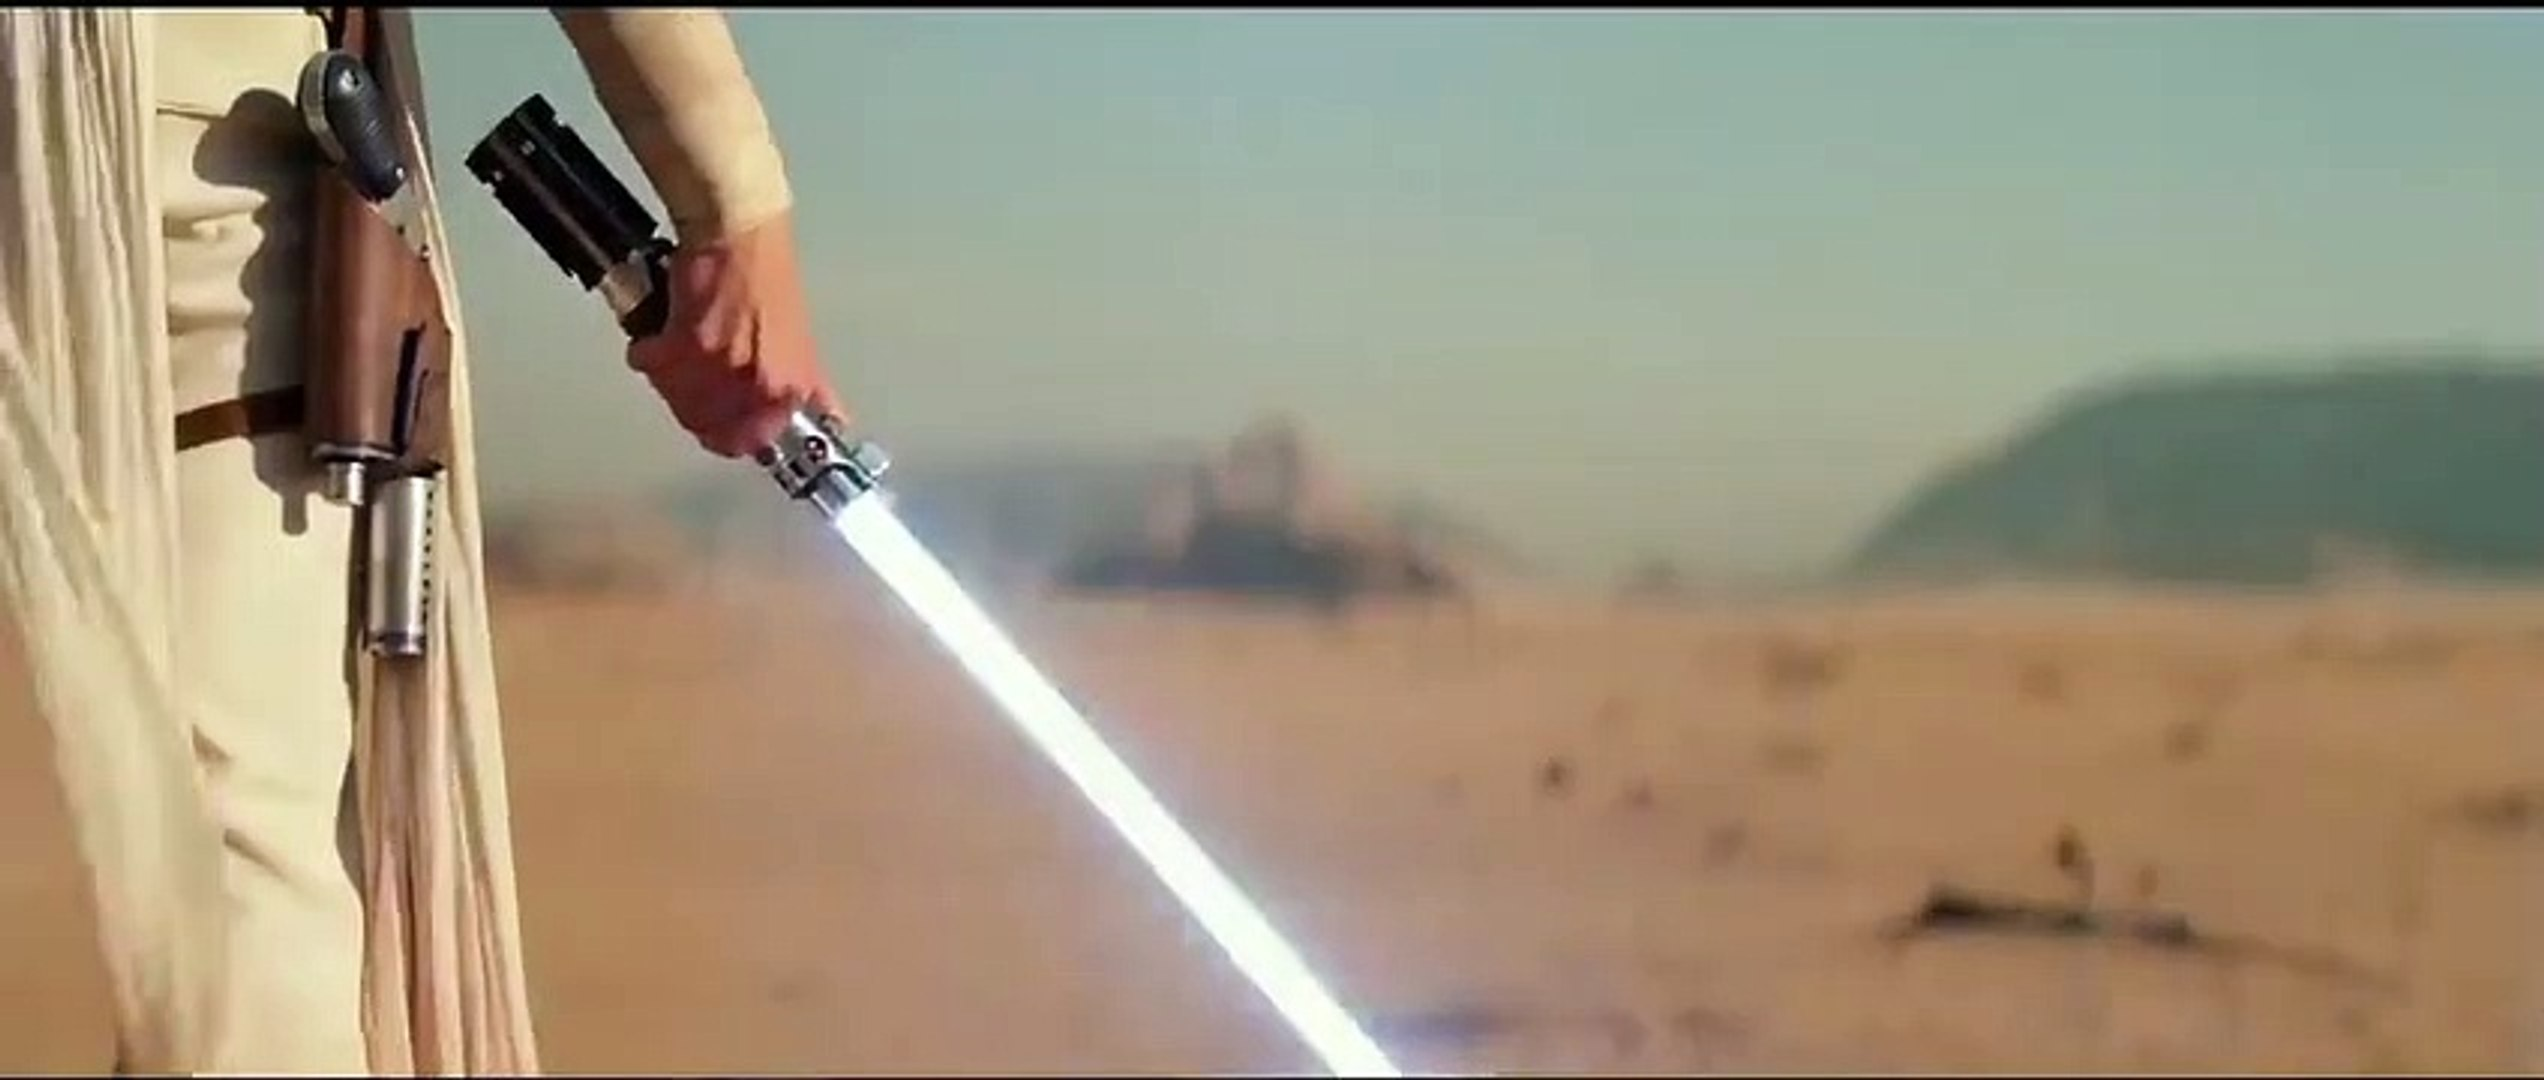 Star Wars The Rise of Skywalker Teaser Trailer 1 (2019)